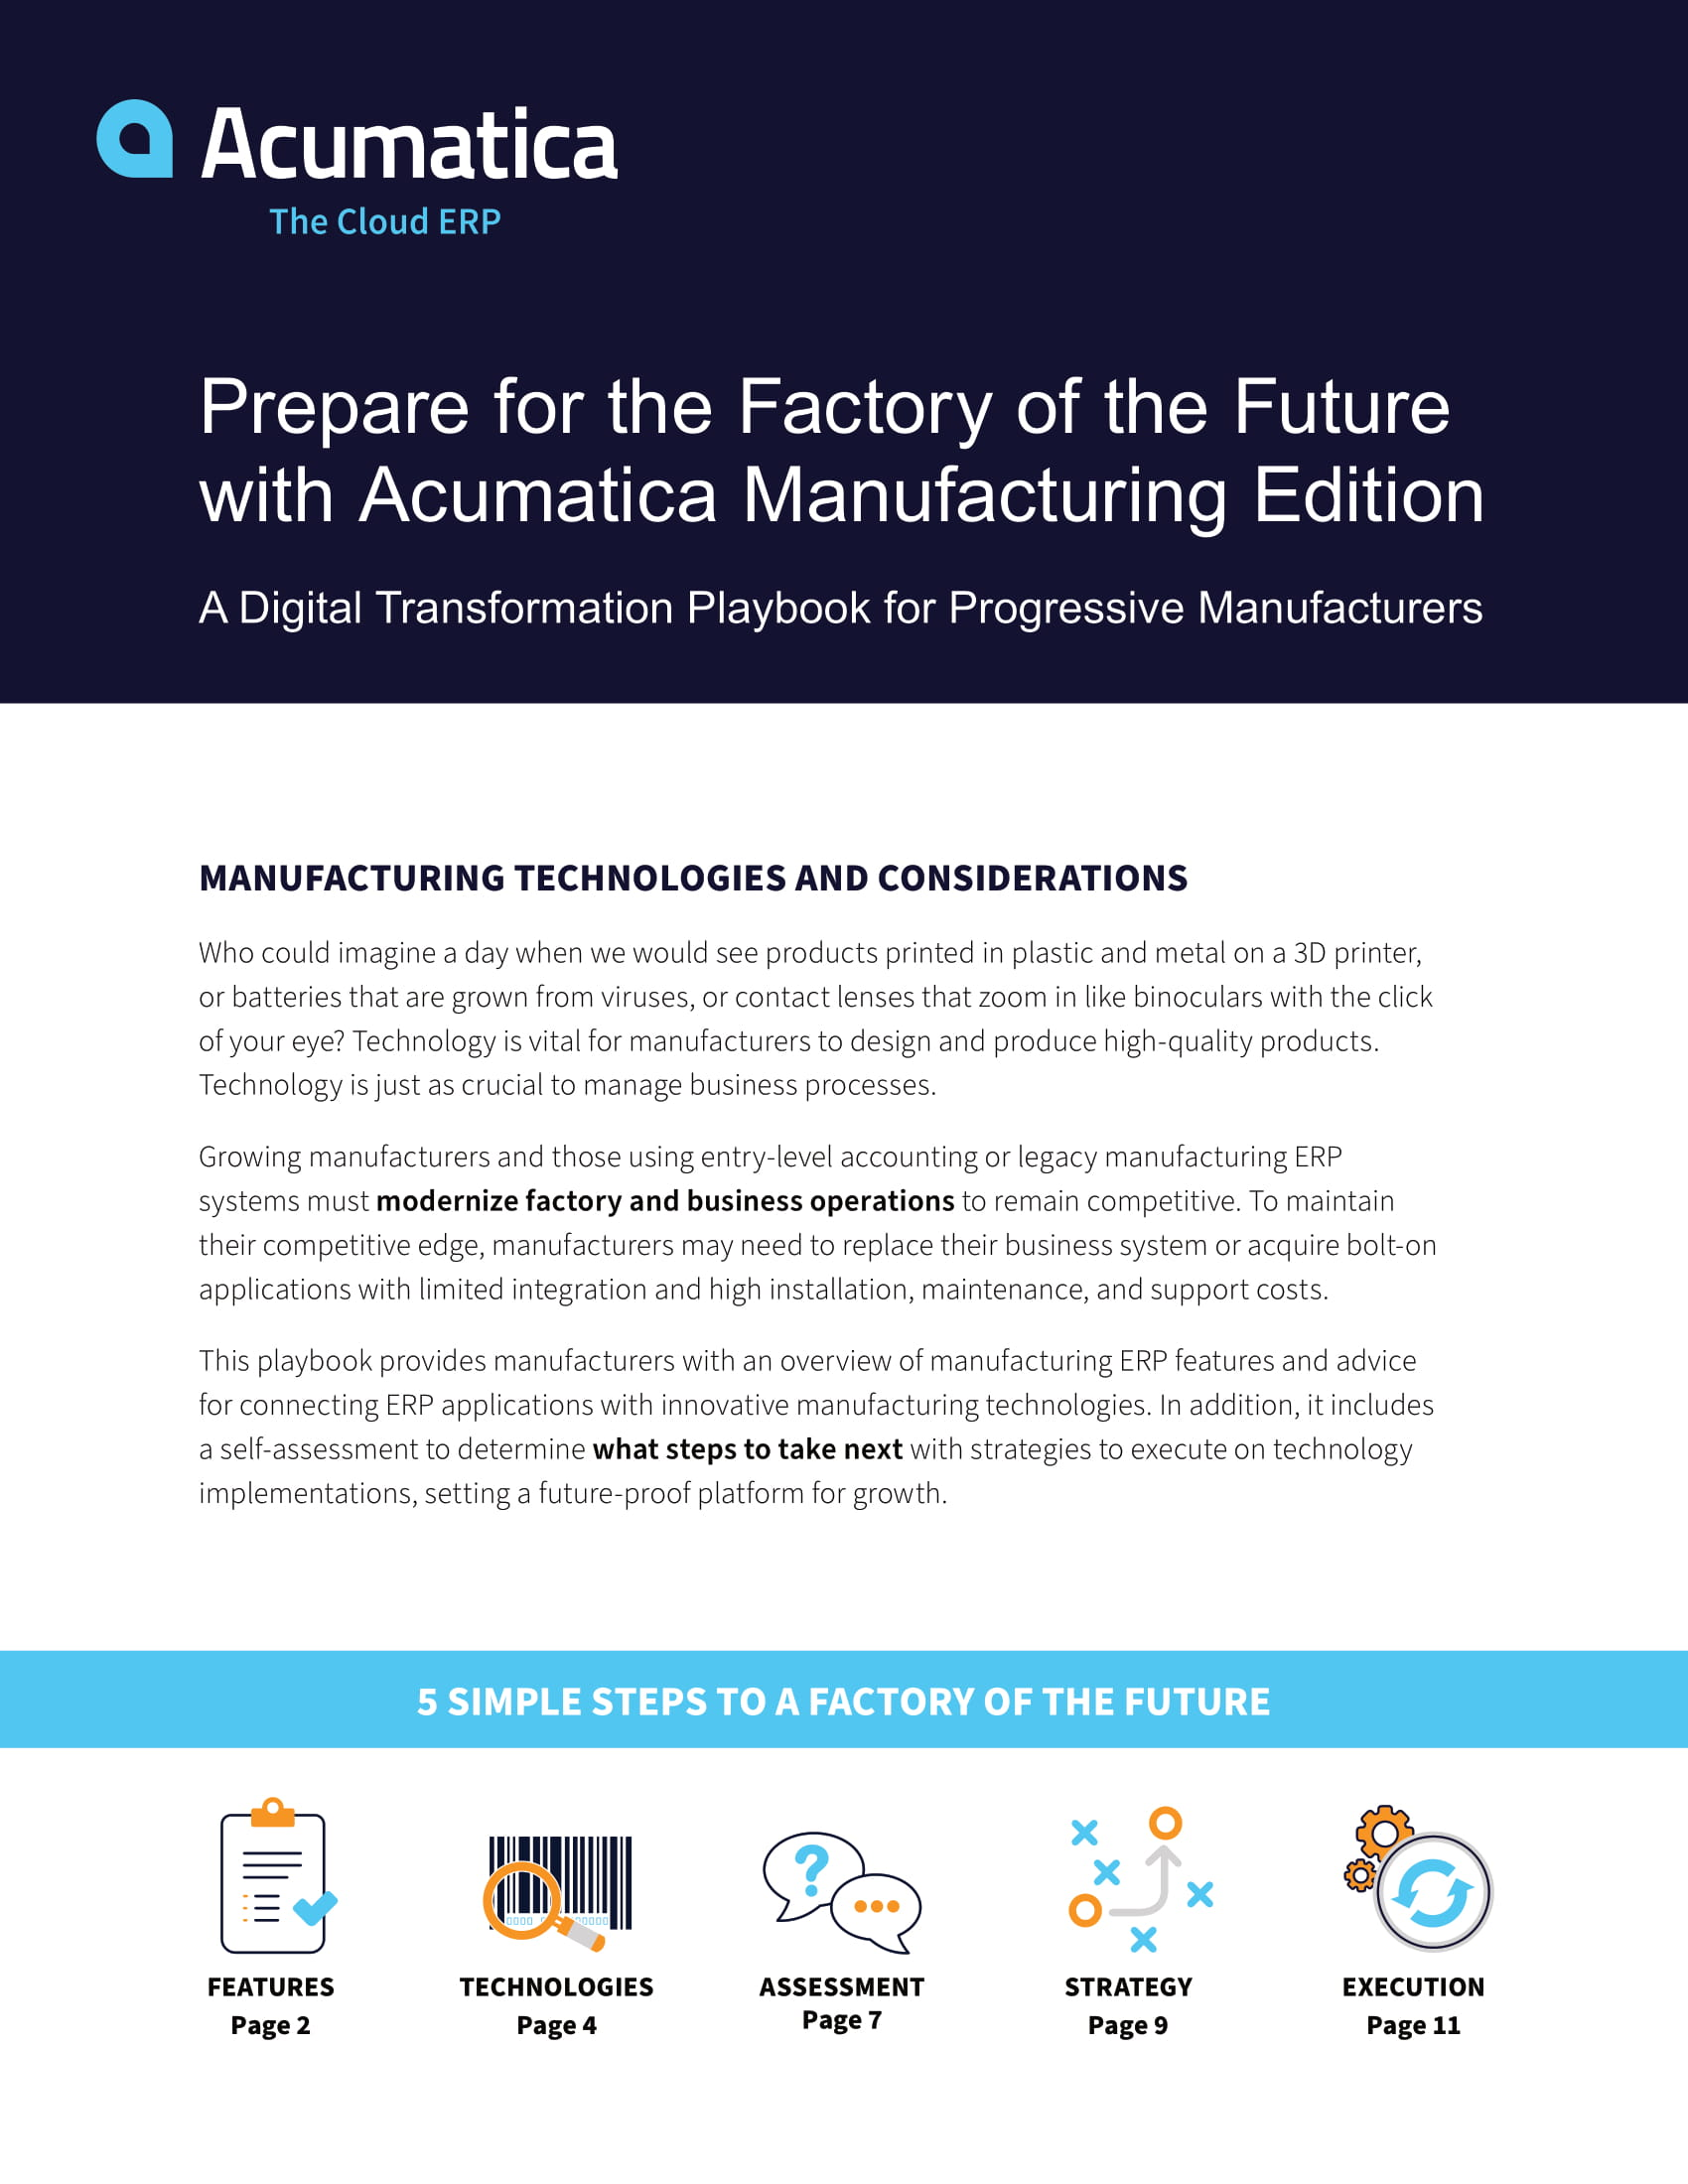 Build Your Factory of the Future